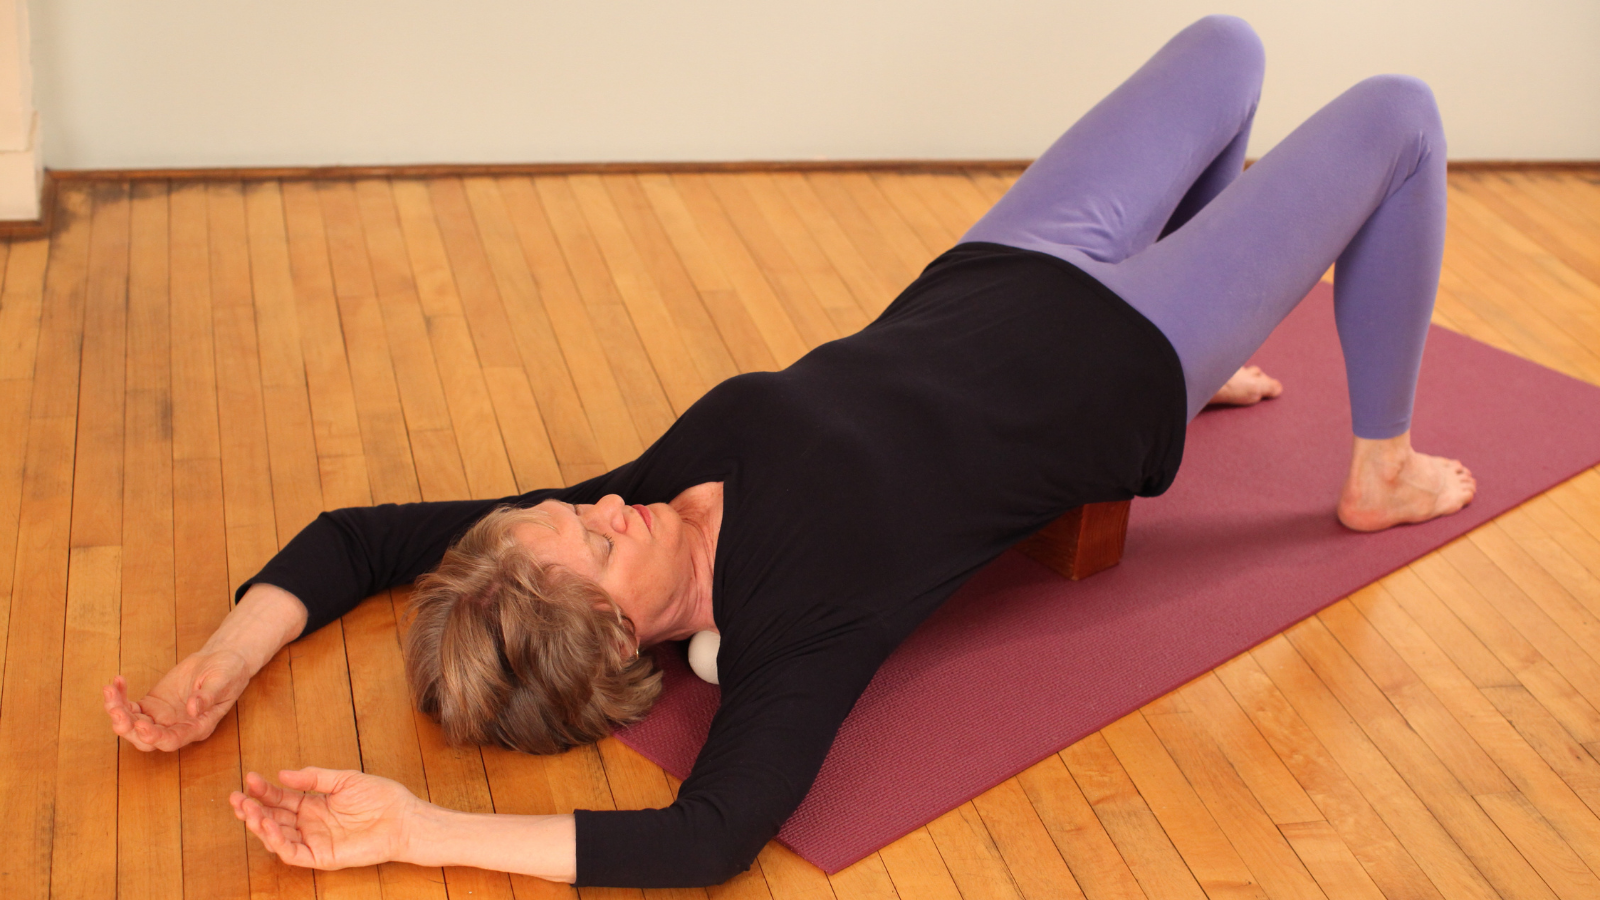 Back and shoulder routine using exercise balls under your trapezius and a block to support your lower back to release tension